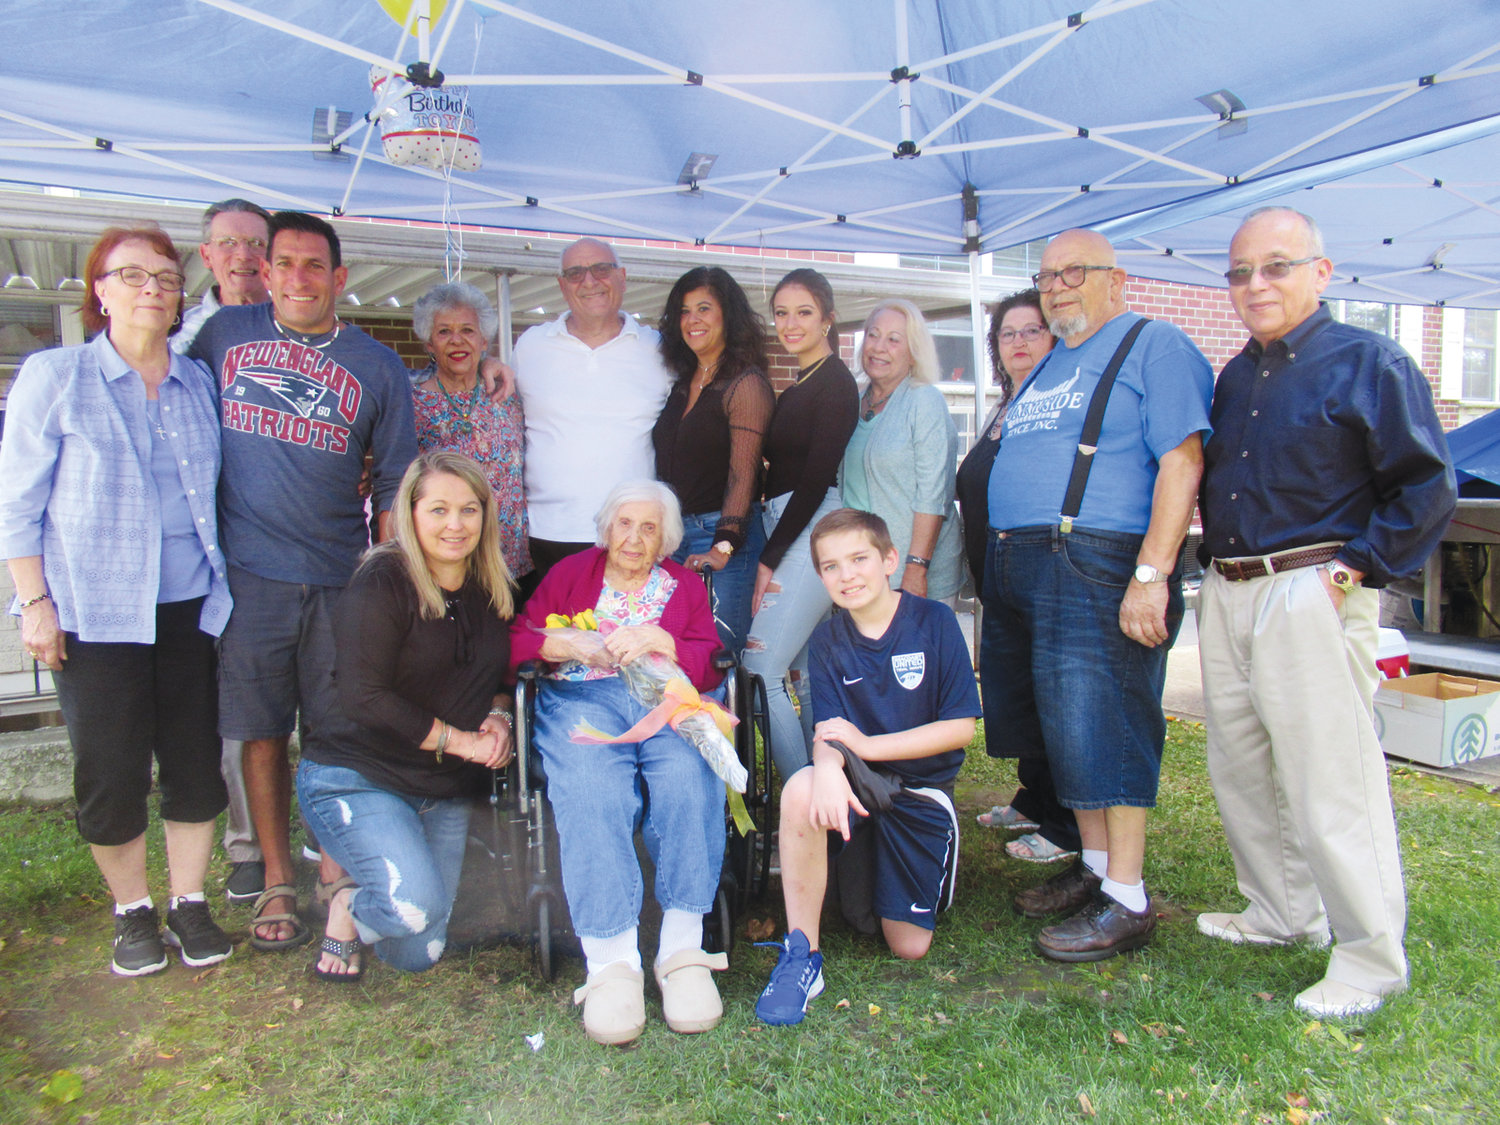 NANA'S NICHE: Margaret Pinelli DiMuccio (center), who was born on Sept. 30, 1914 in Providence, is surrounded by her family during Sunday's 105th birthday bash at the West Shore Health Center in Warwick. The group includes: Judy Crudale, Andrew Crudale, Trina DiMuccio, James Crudale, Sandra Frazee, Michael DiMuccio, Gina Sabitoni-Arakelian, Giavanna Arakelian, Donna Martinez, Linda DiMuccio, John DiMuccio, Deloy Martinez and Norman Fazee.